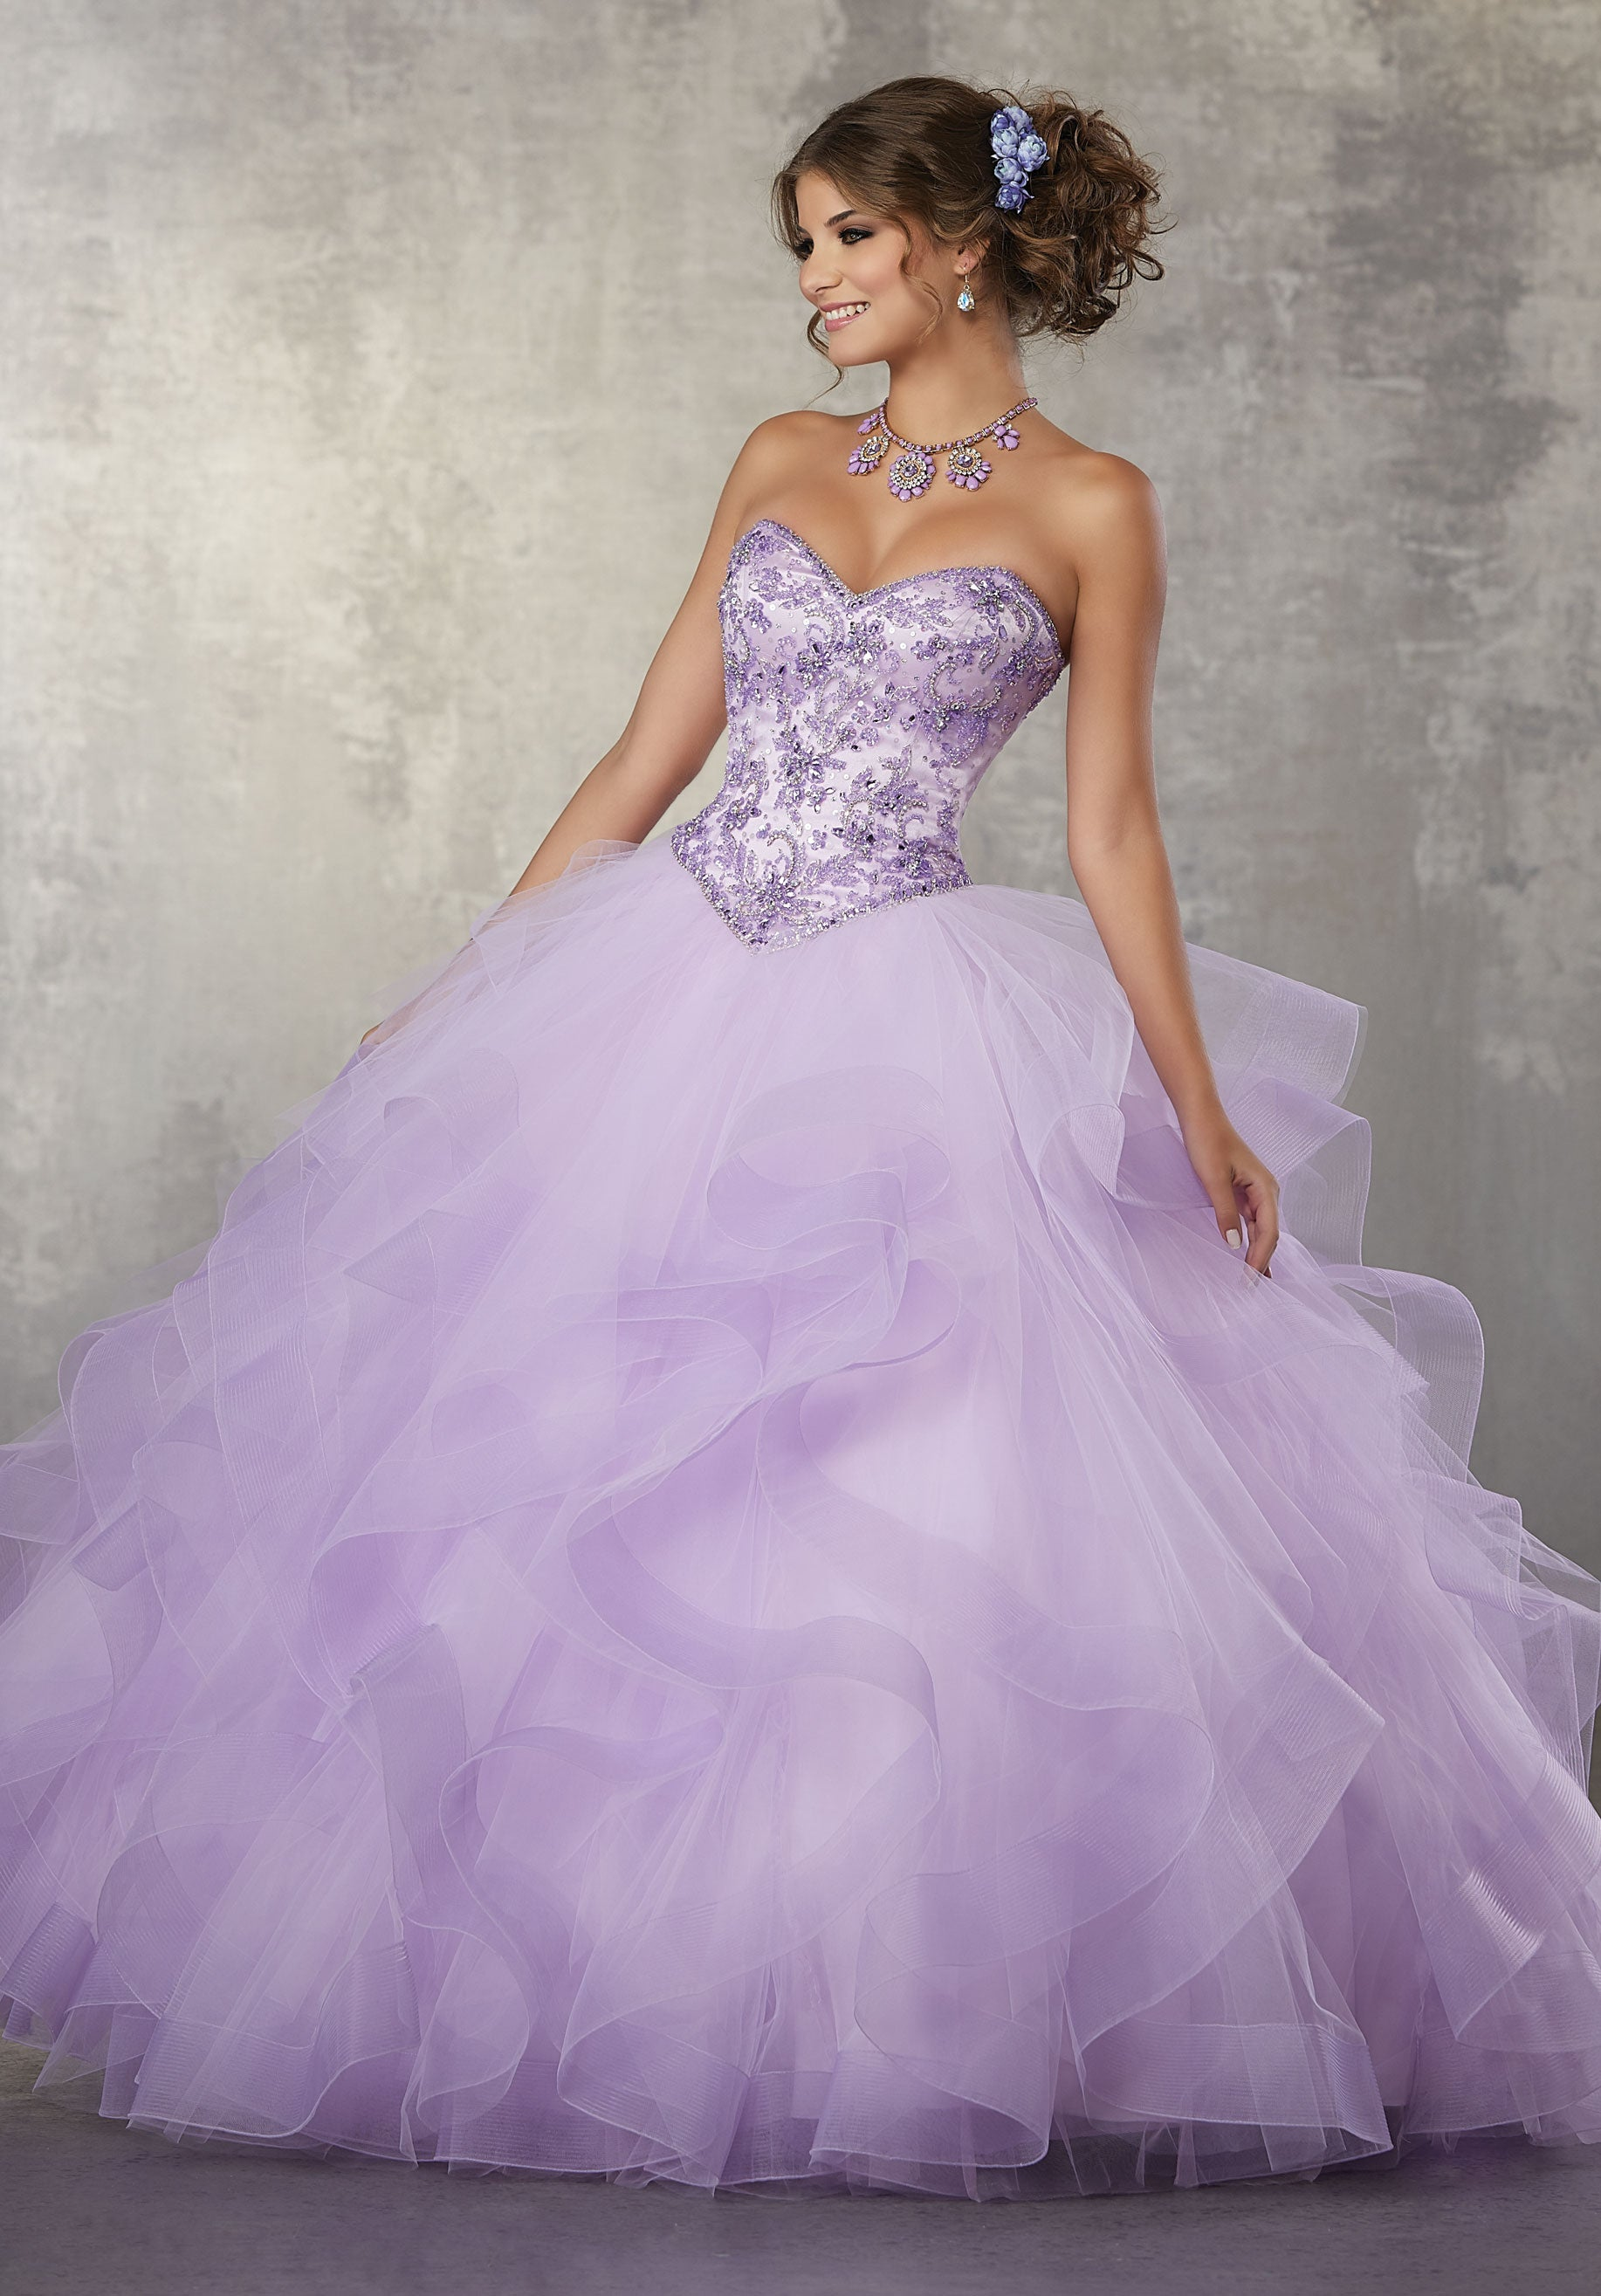 78055 Quinceanera Ballgown with a Crystal Beaded Bodice on a Flounced Tulle